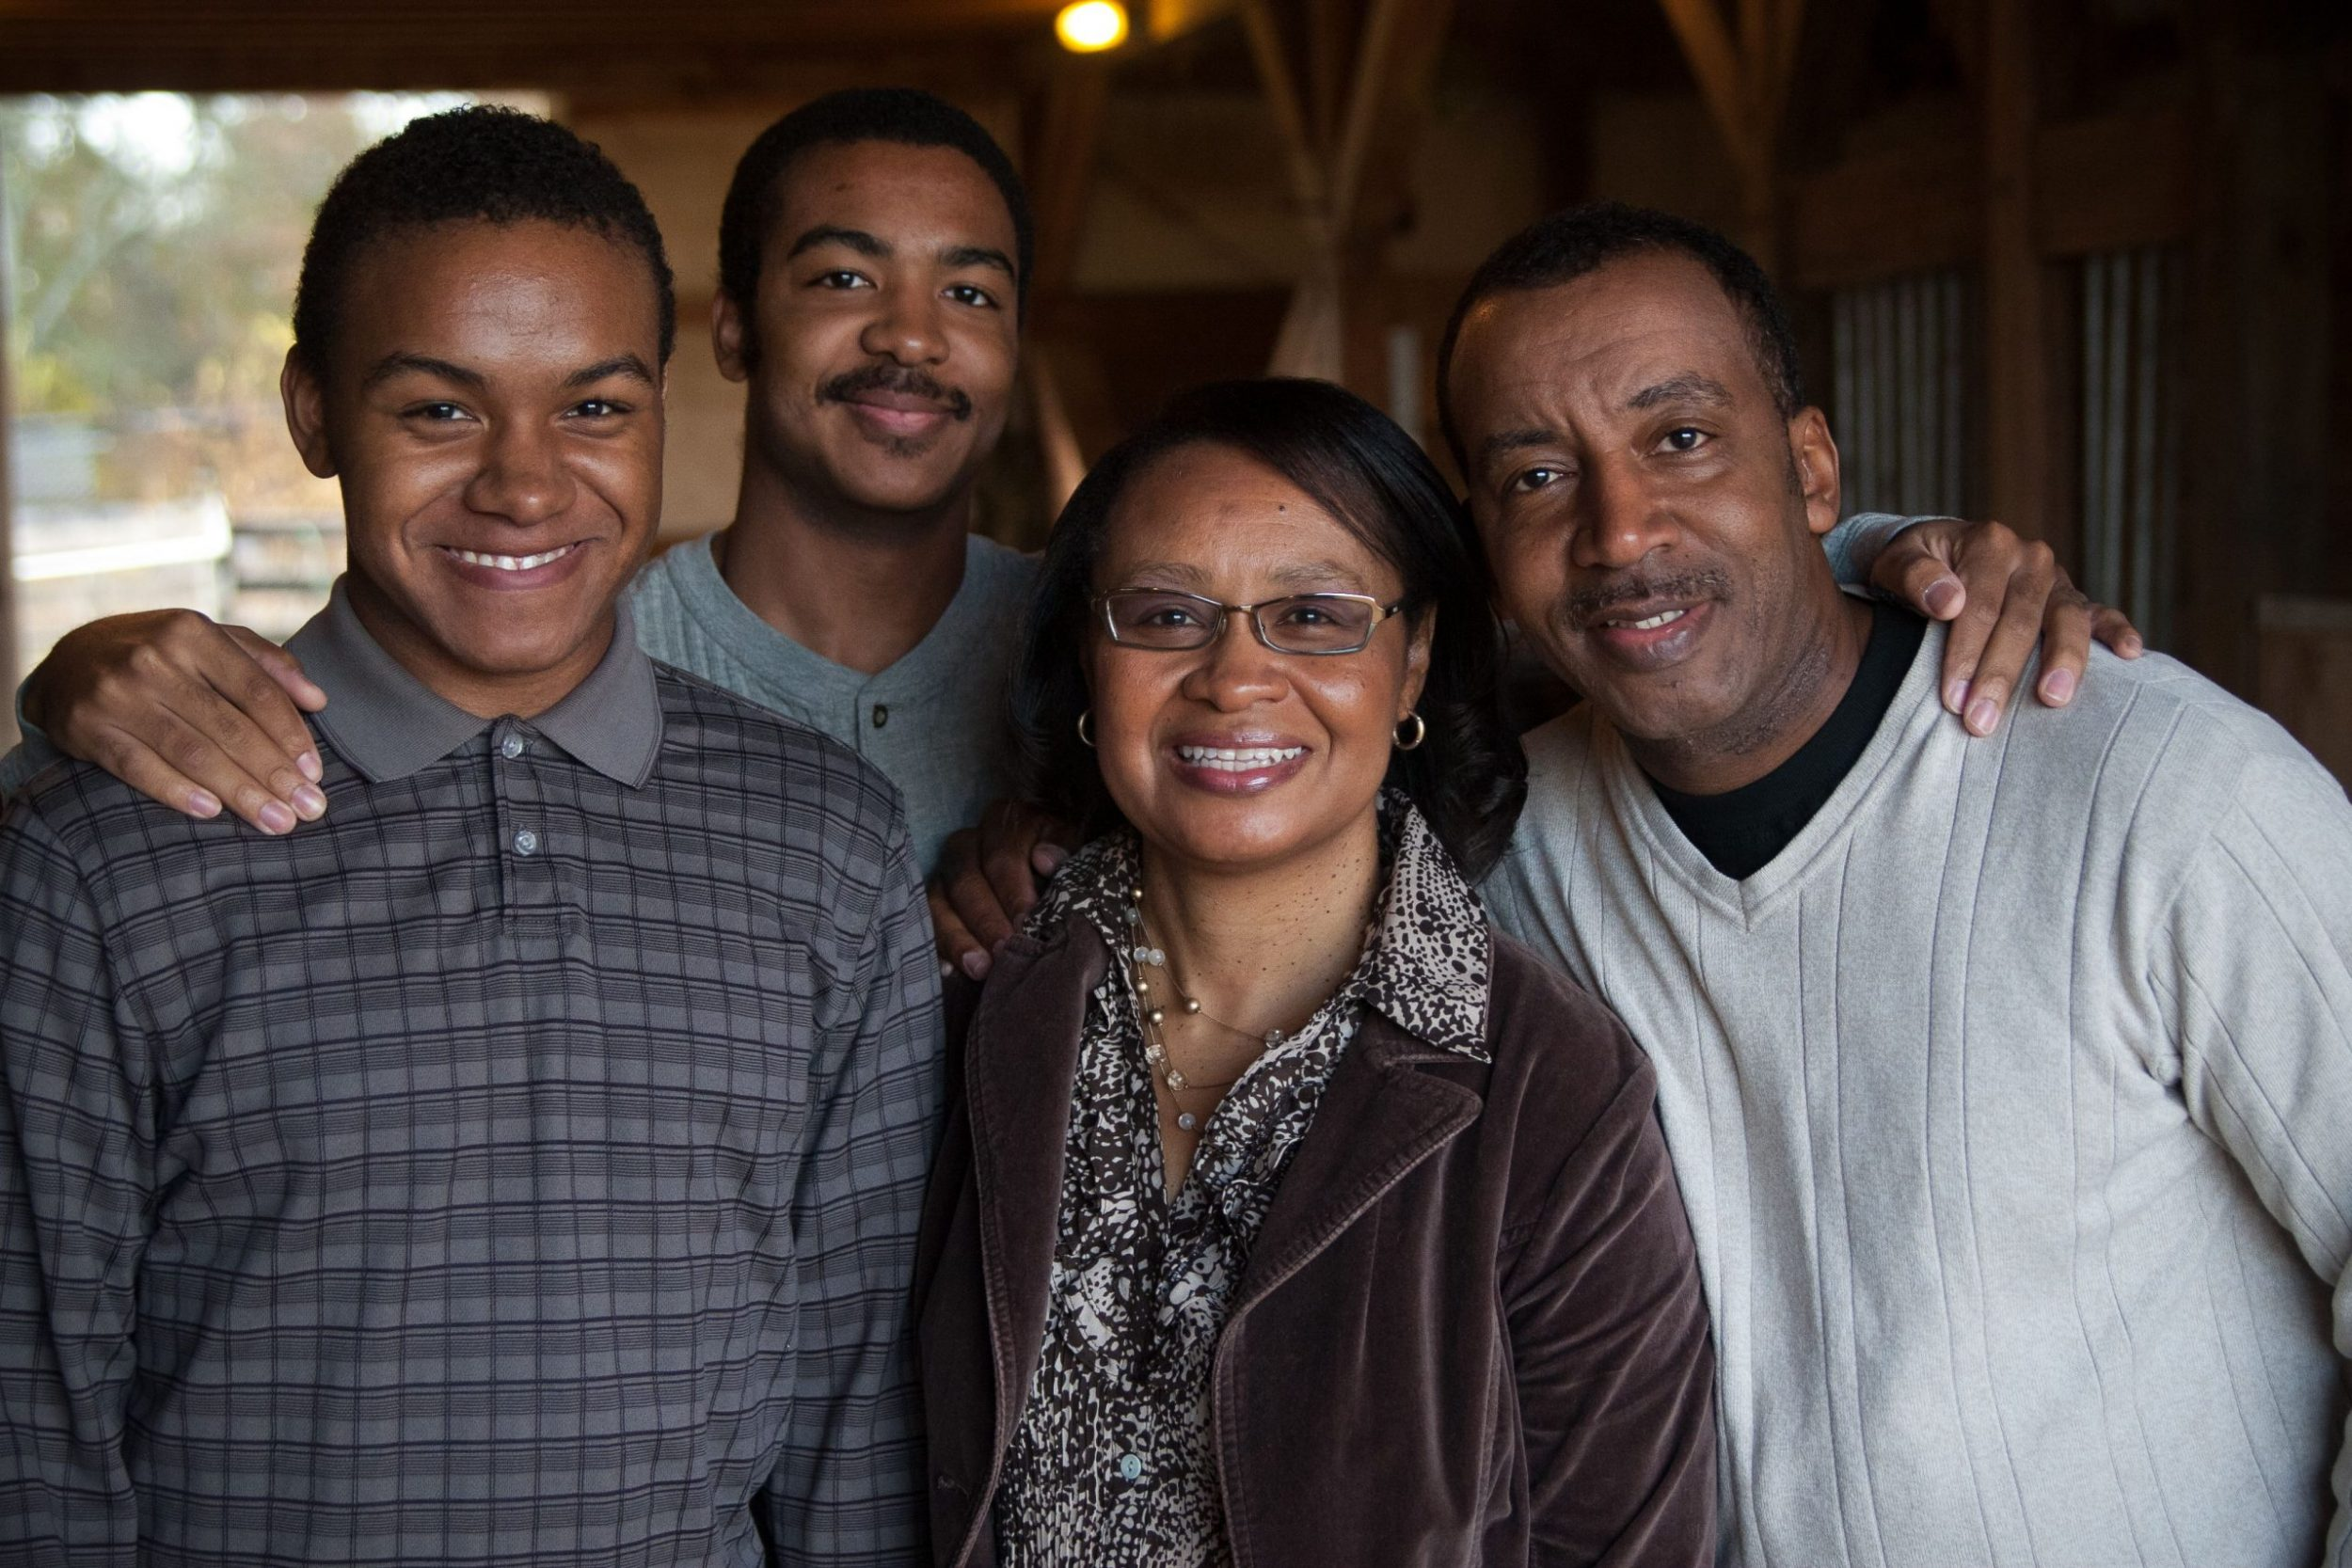 Brown Family of 4, mom, dad and 2 sons